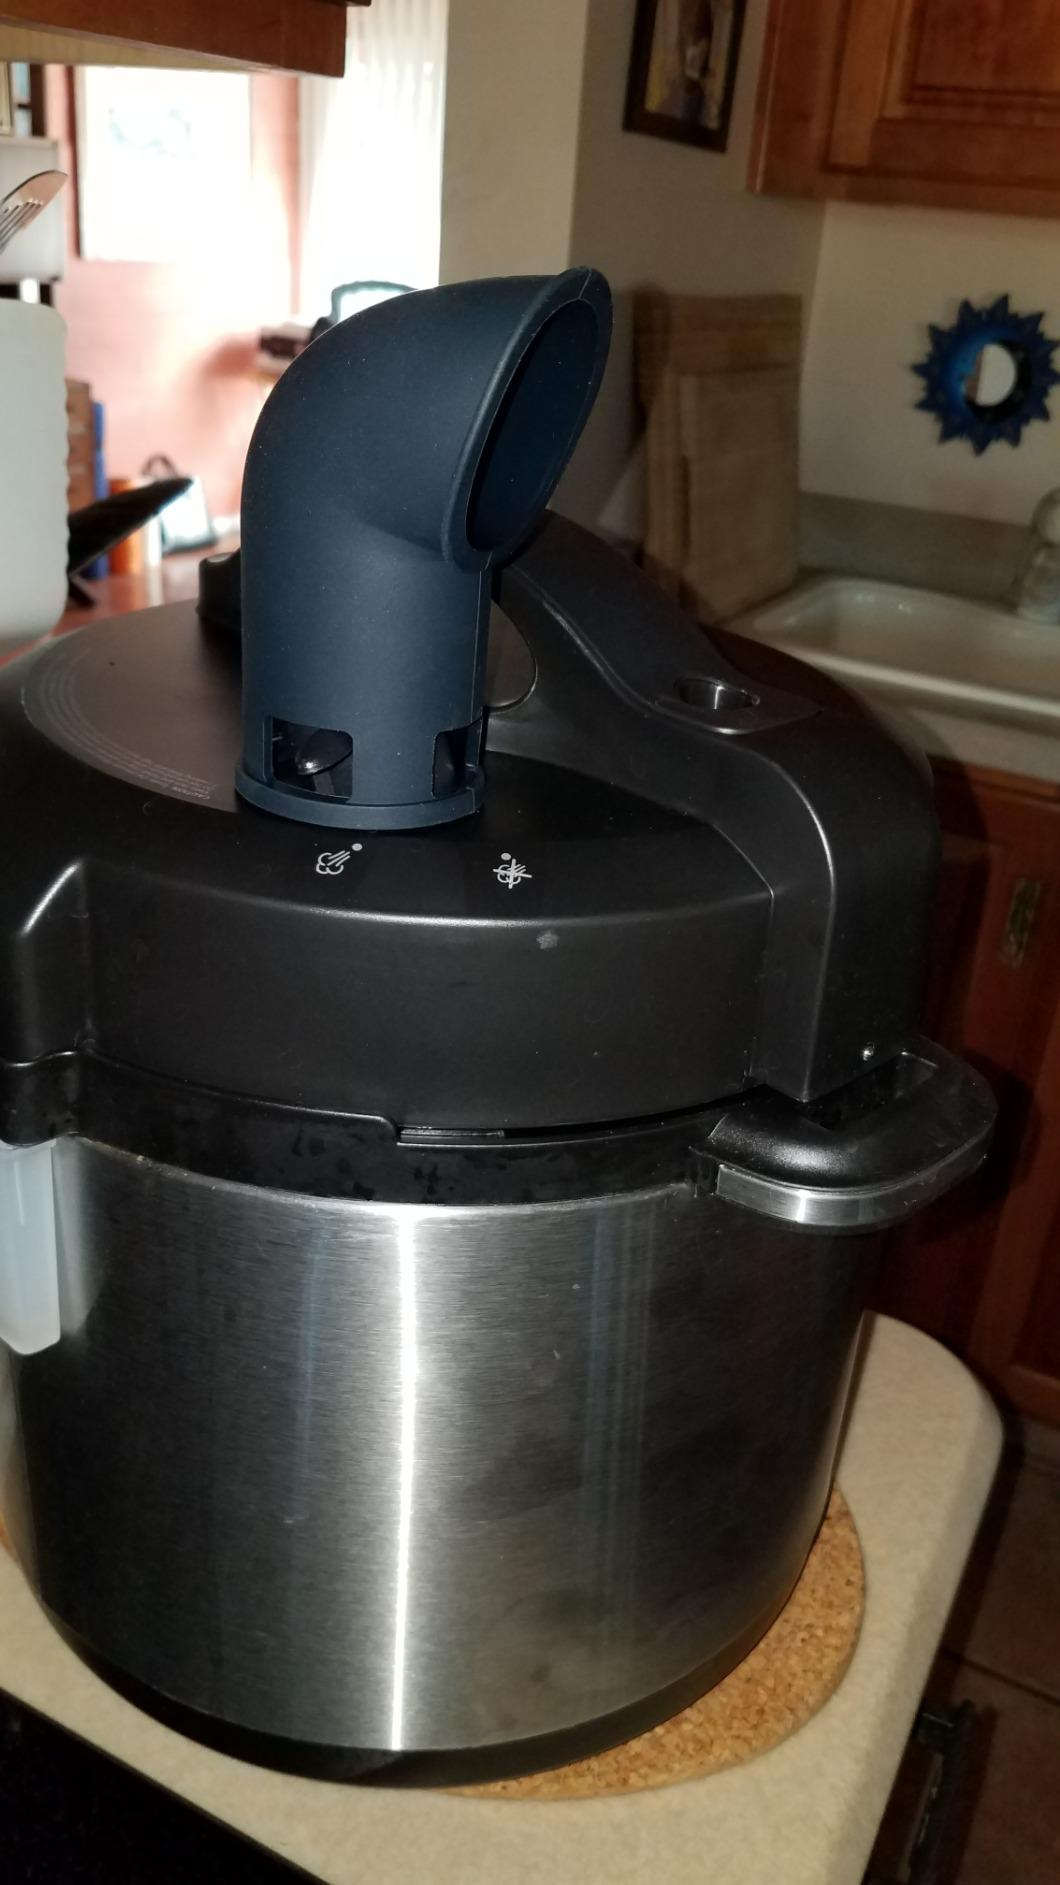 Fits 6 qt. Crock Pot Express 8 in 1 Multicooker!